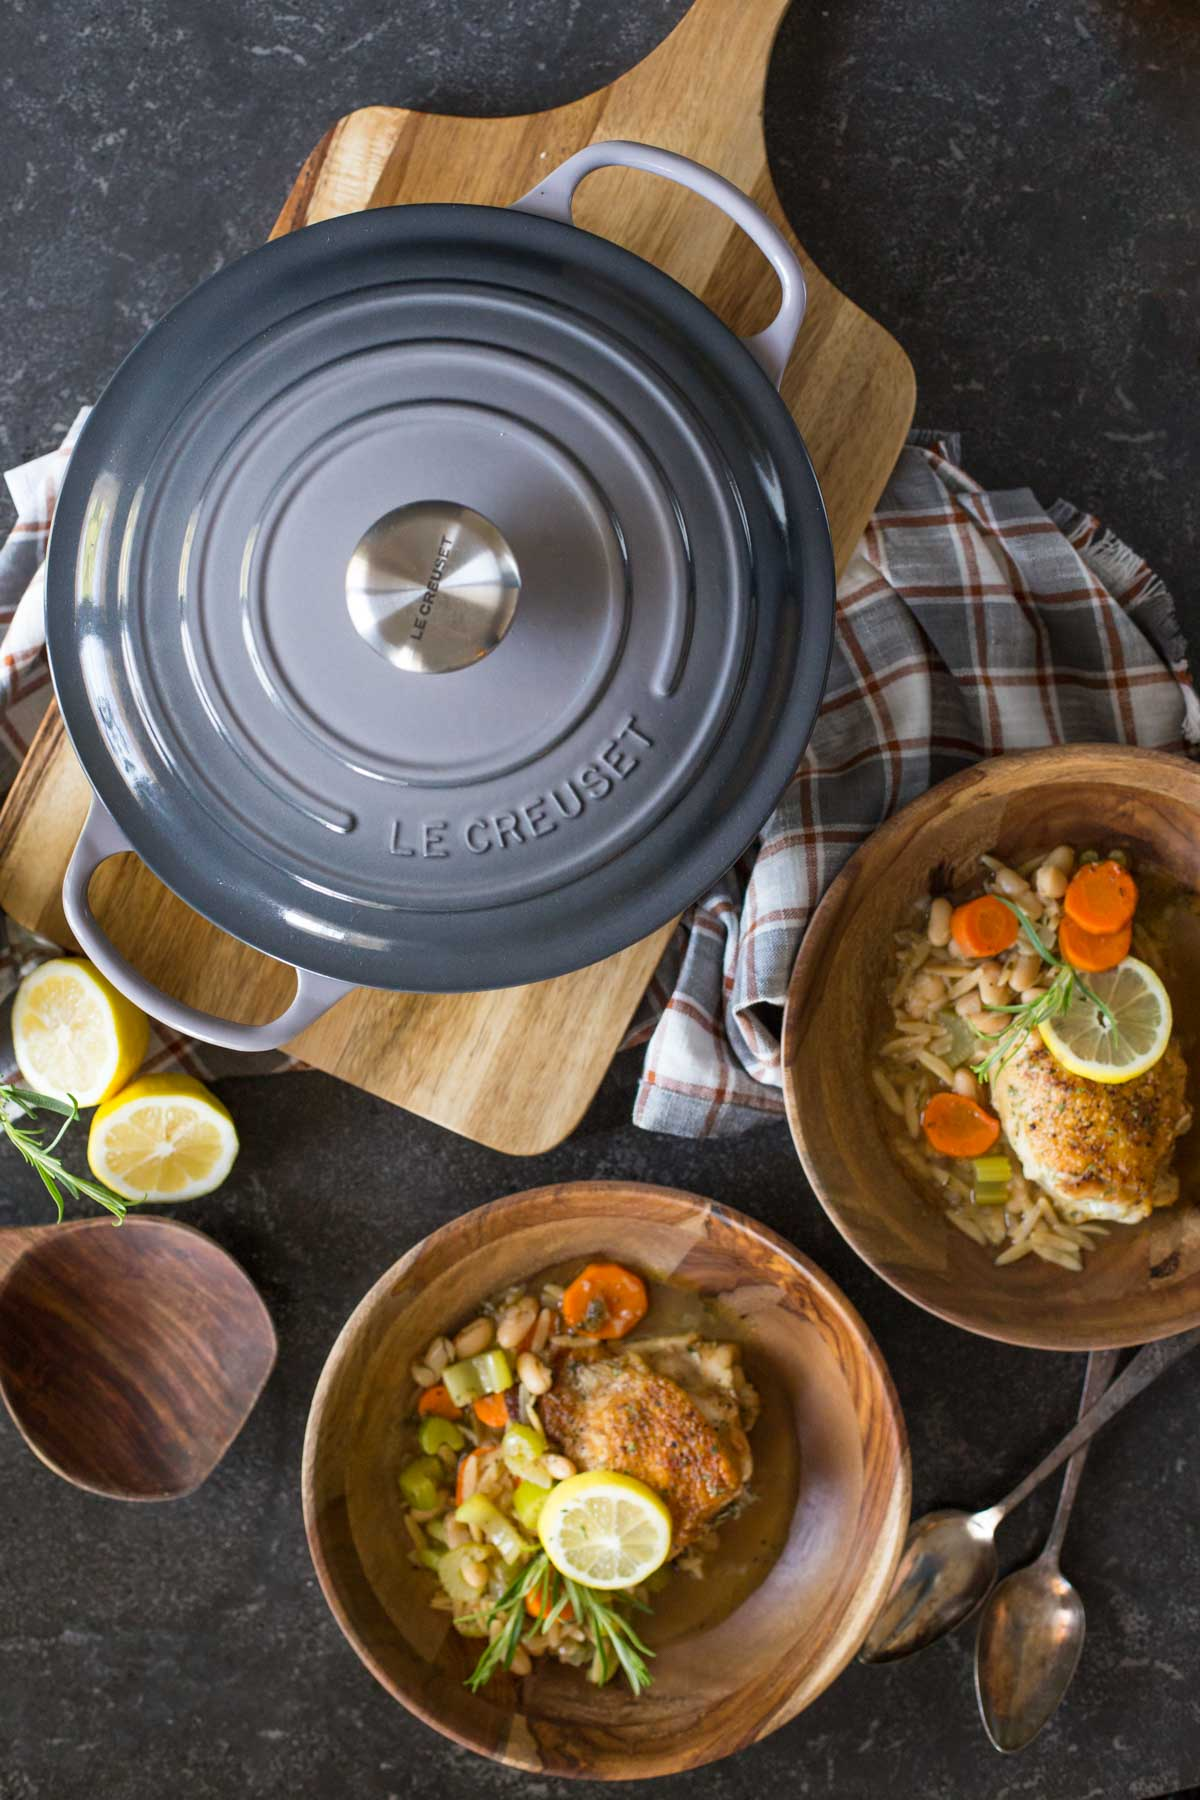 Rustic Lemon Rosemary Chicken and Orzo dished into two wood bowls, sitting next to a Le Creuset Dutch oven with the lid on.